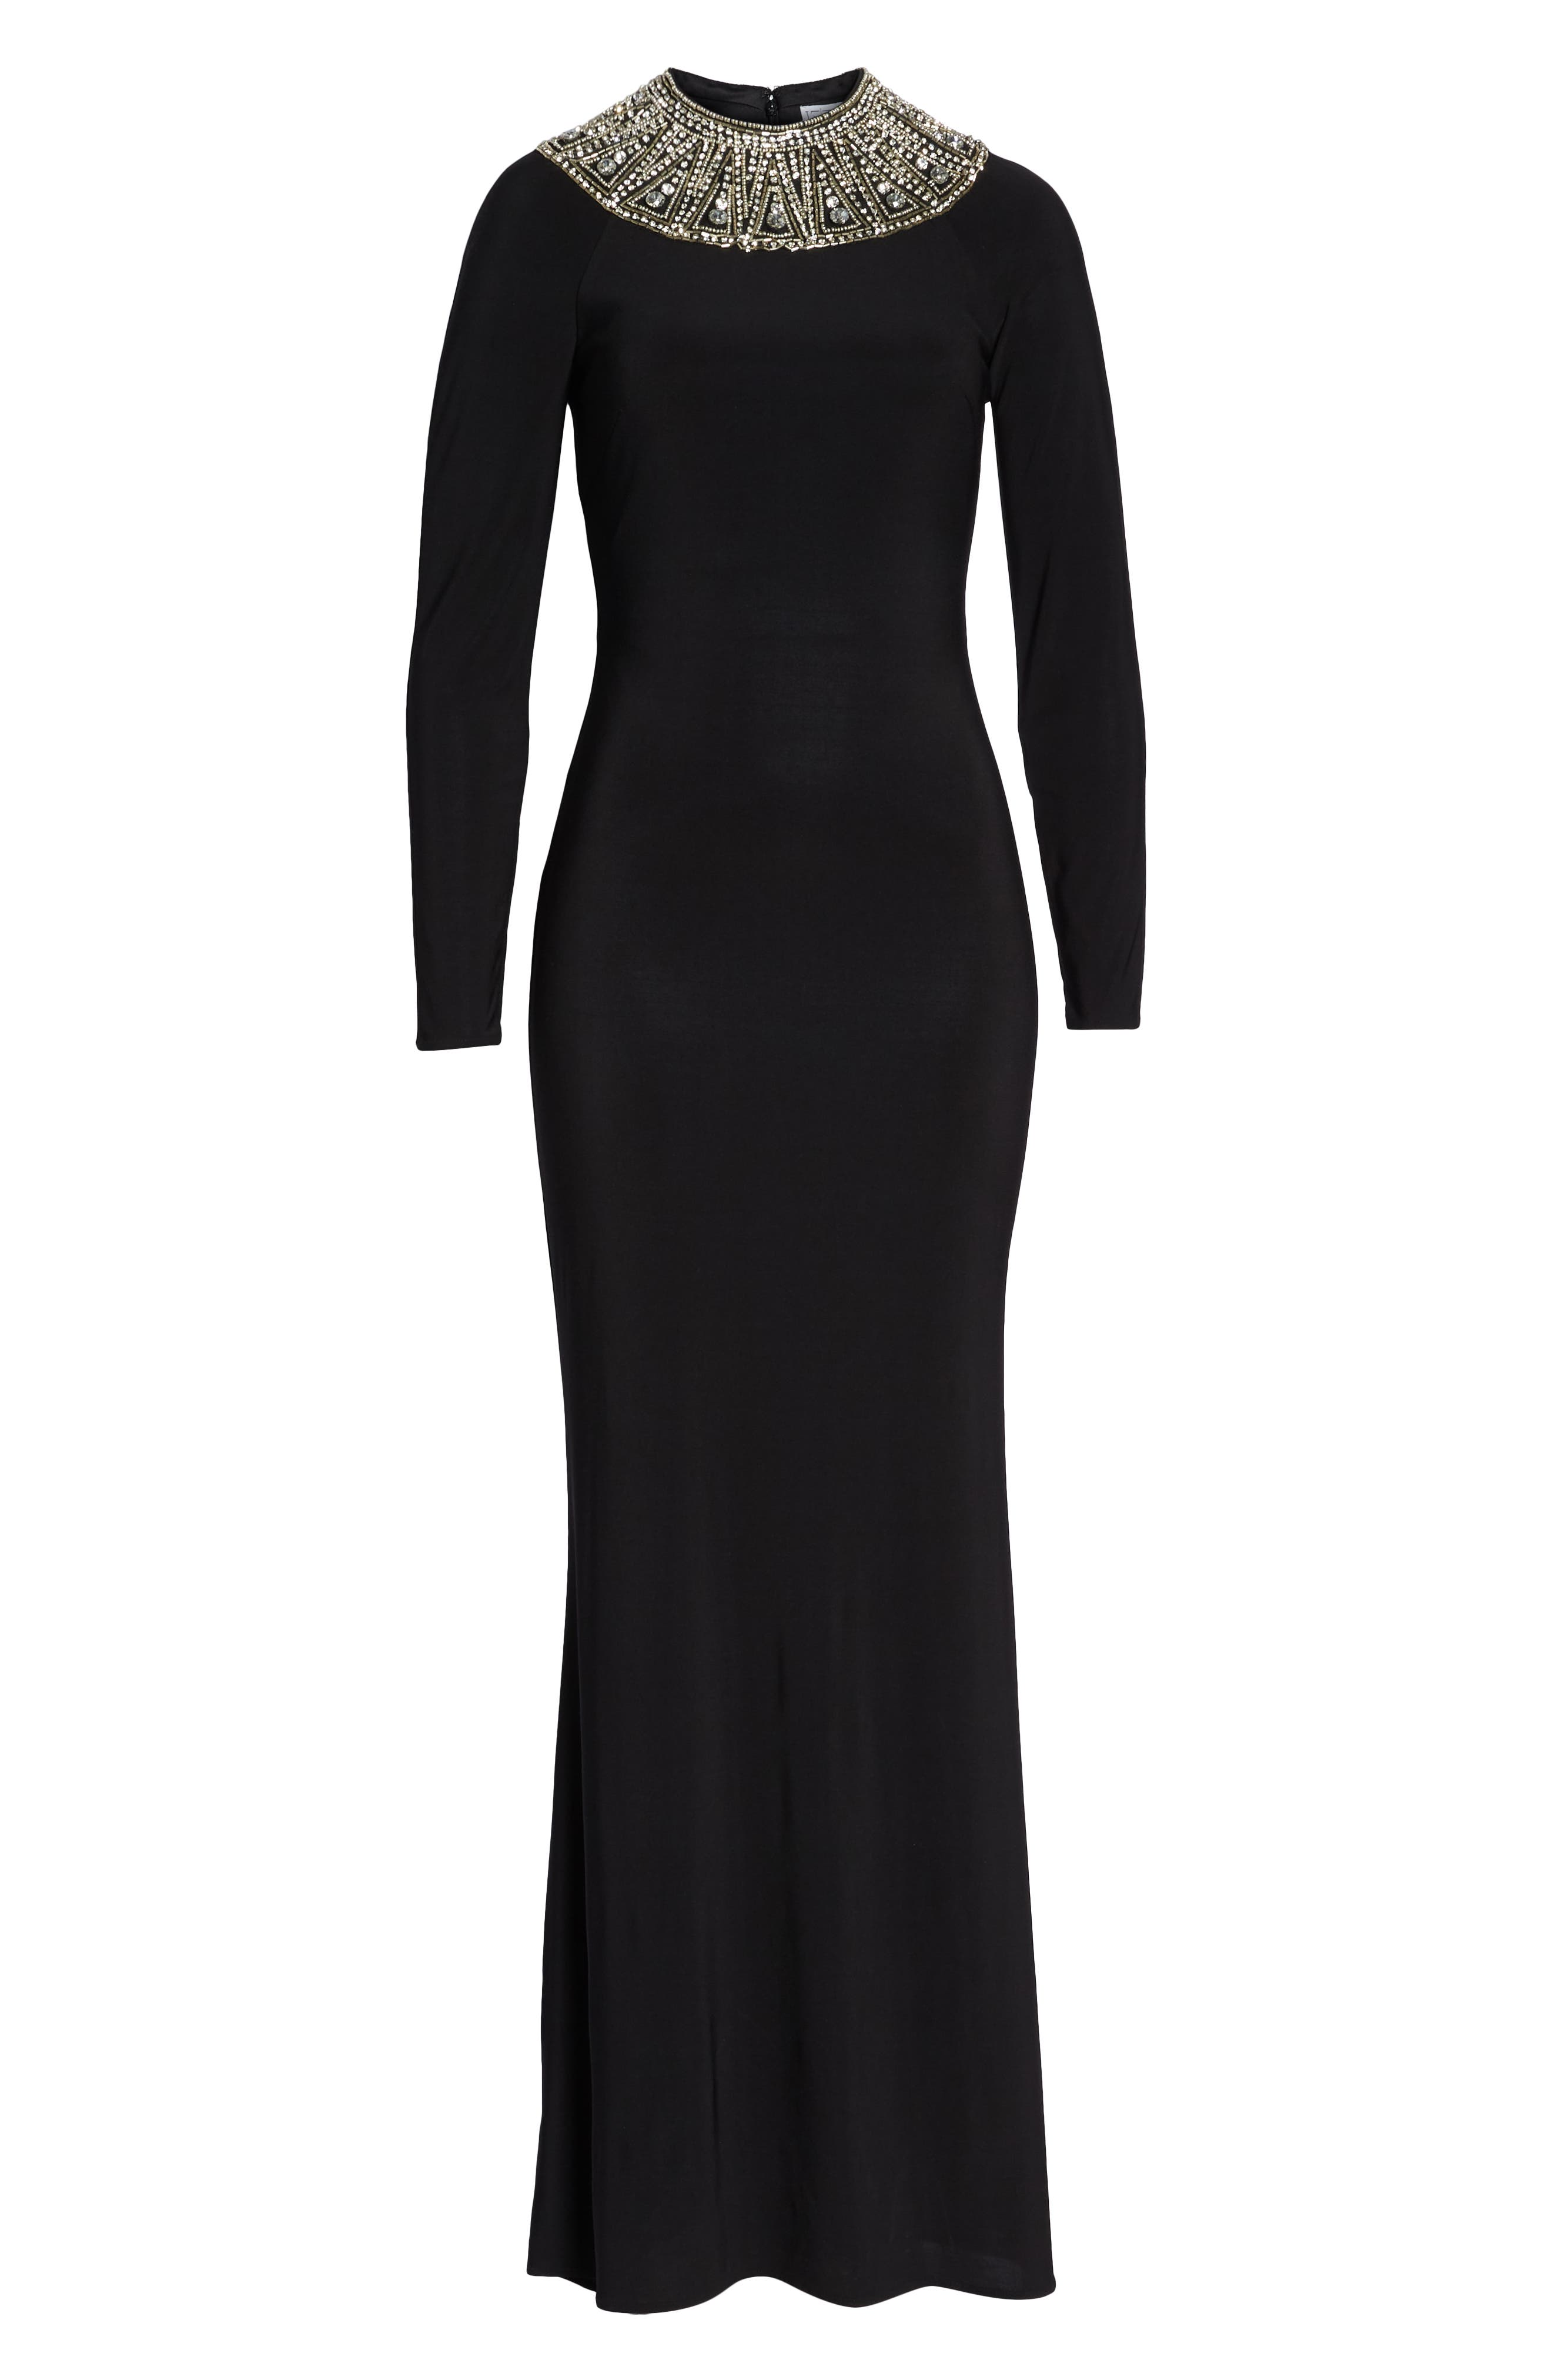 IEENA FOR MAC DUGGAL, Mac Duggal Beaded Collar Jersey Gown, Alternate thumbnail 7, color, BLACK